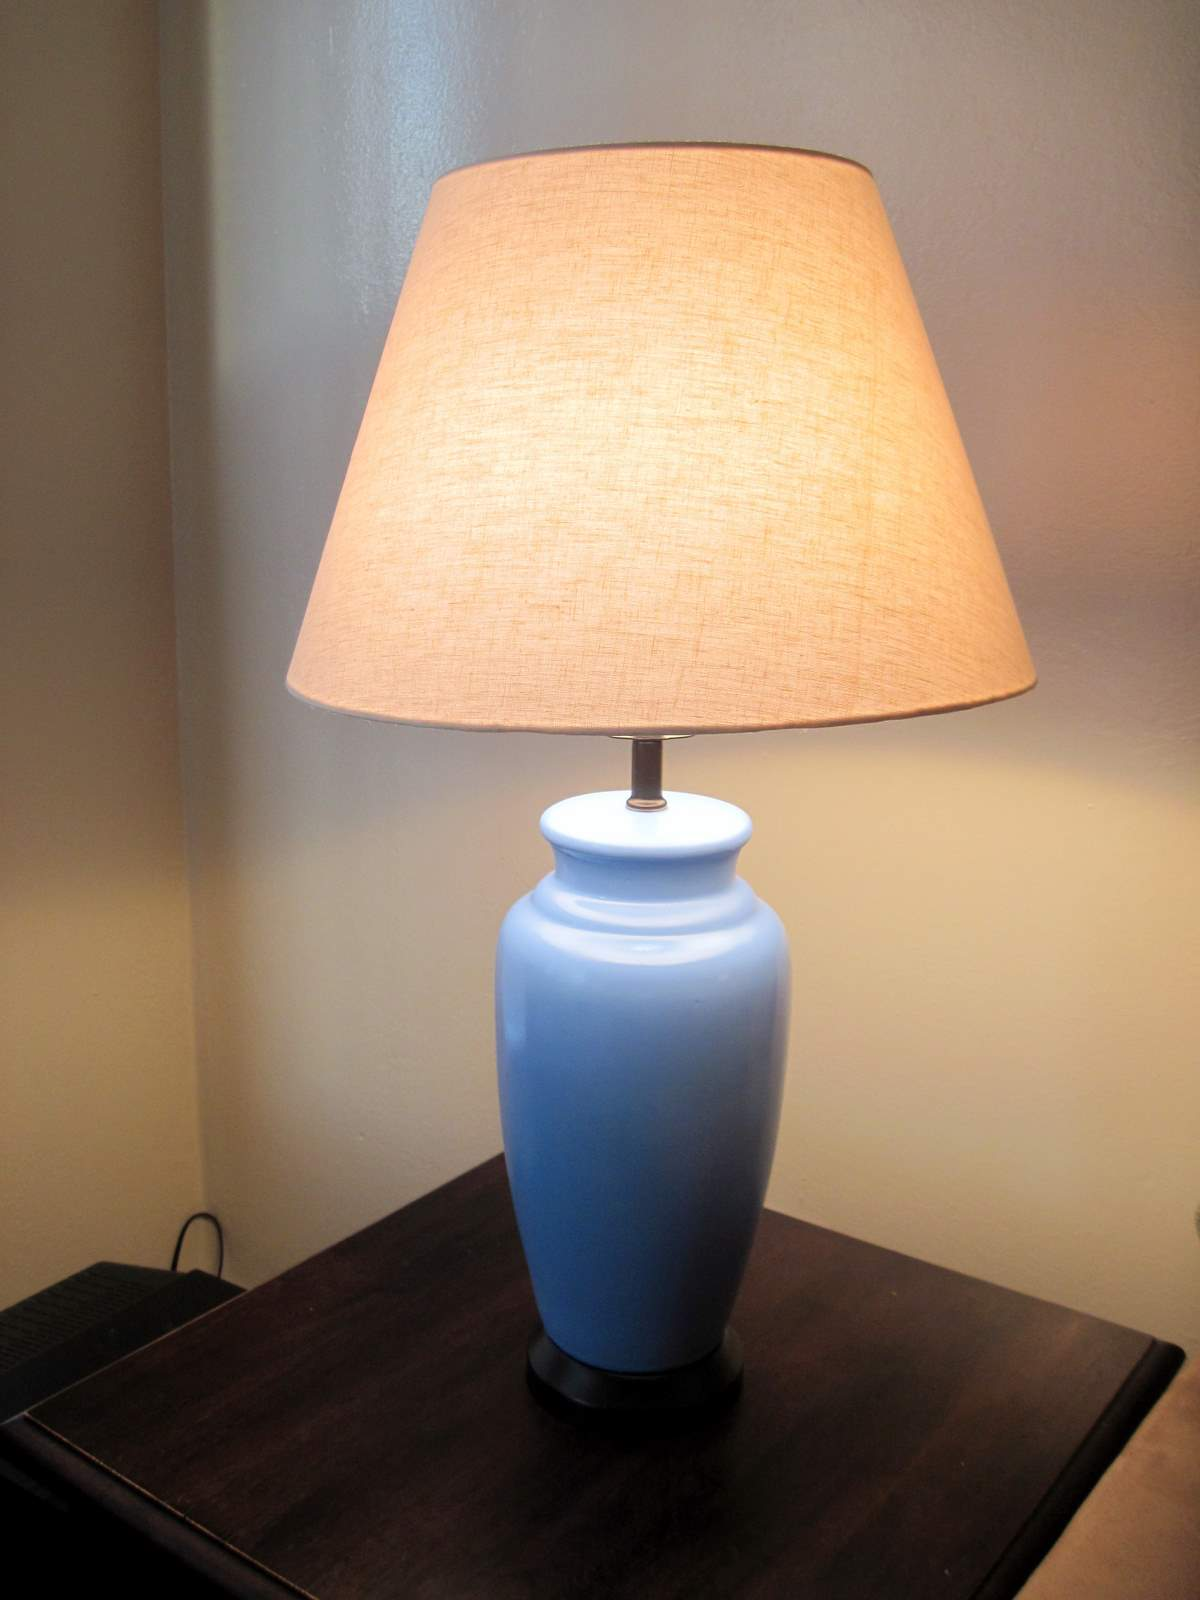 10 great spots to place side table lamps warisan lighting for Living room end table lamps